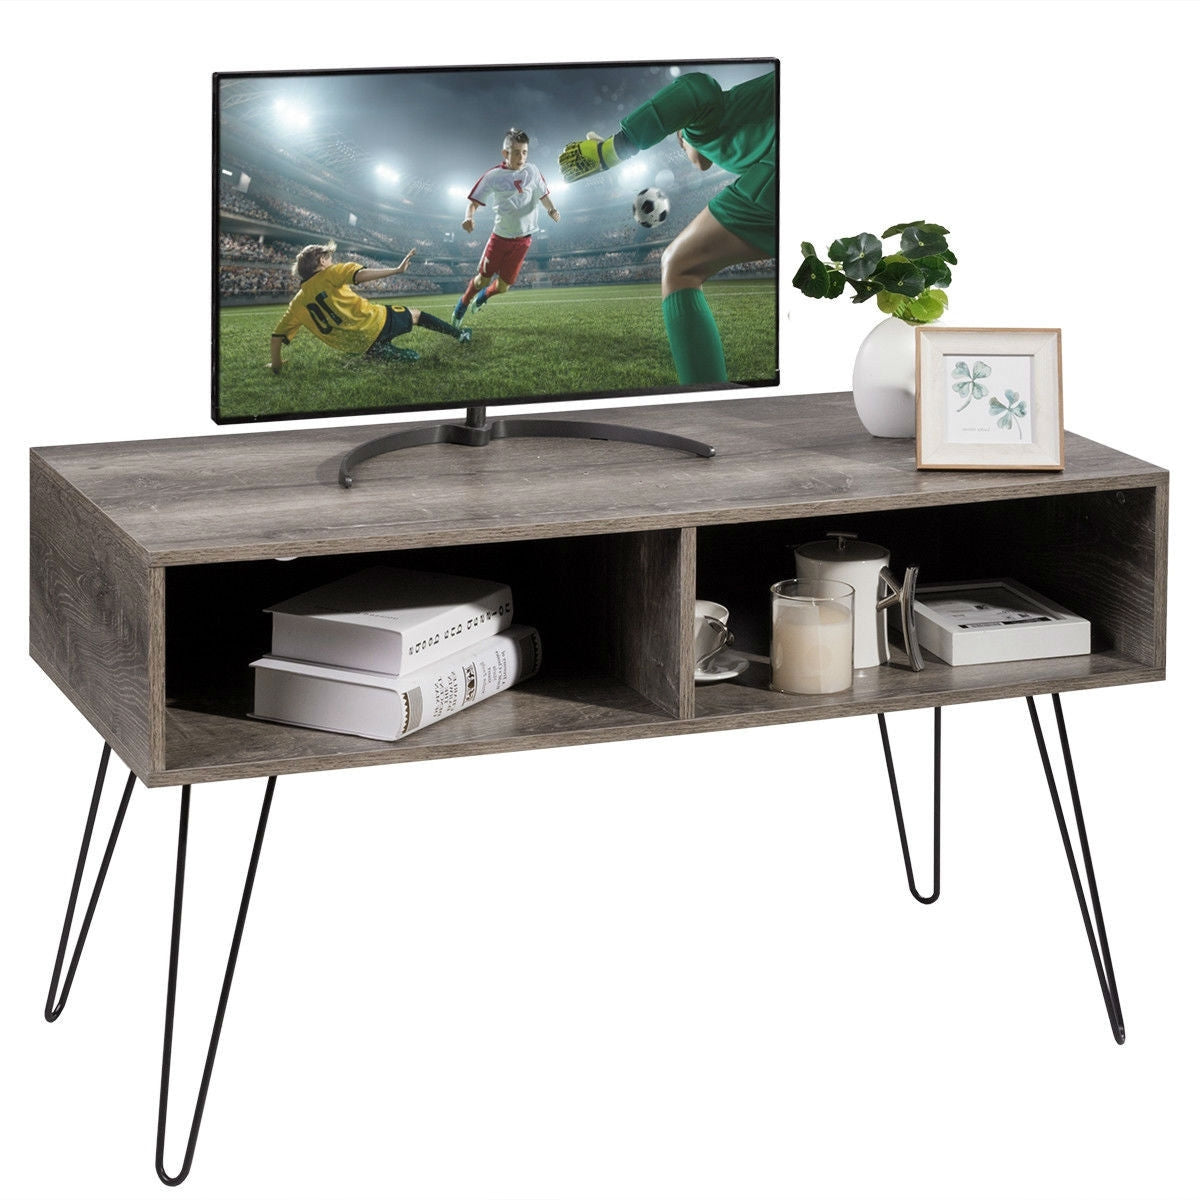 Modern TV Stand in Oak Wood Finish with Metal Legs - Fits up to 42-inch TV